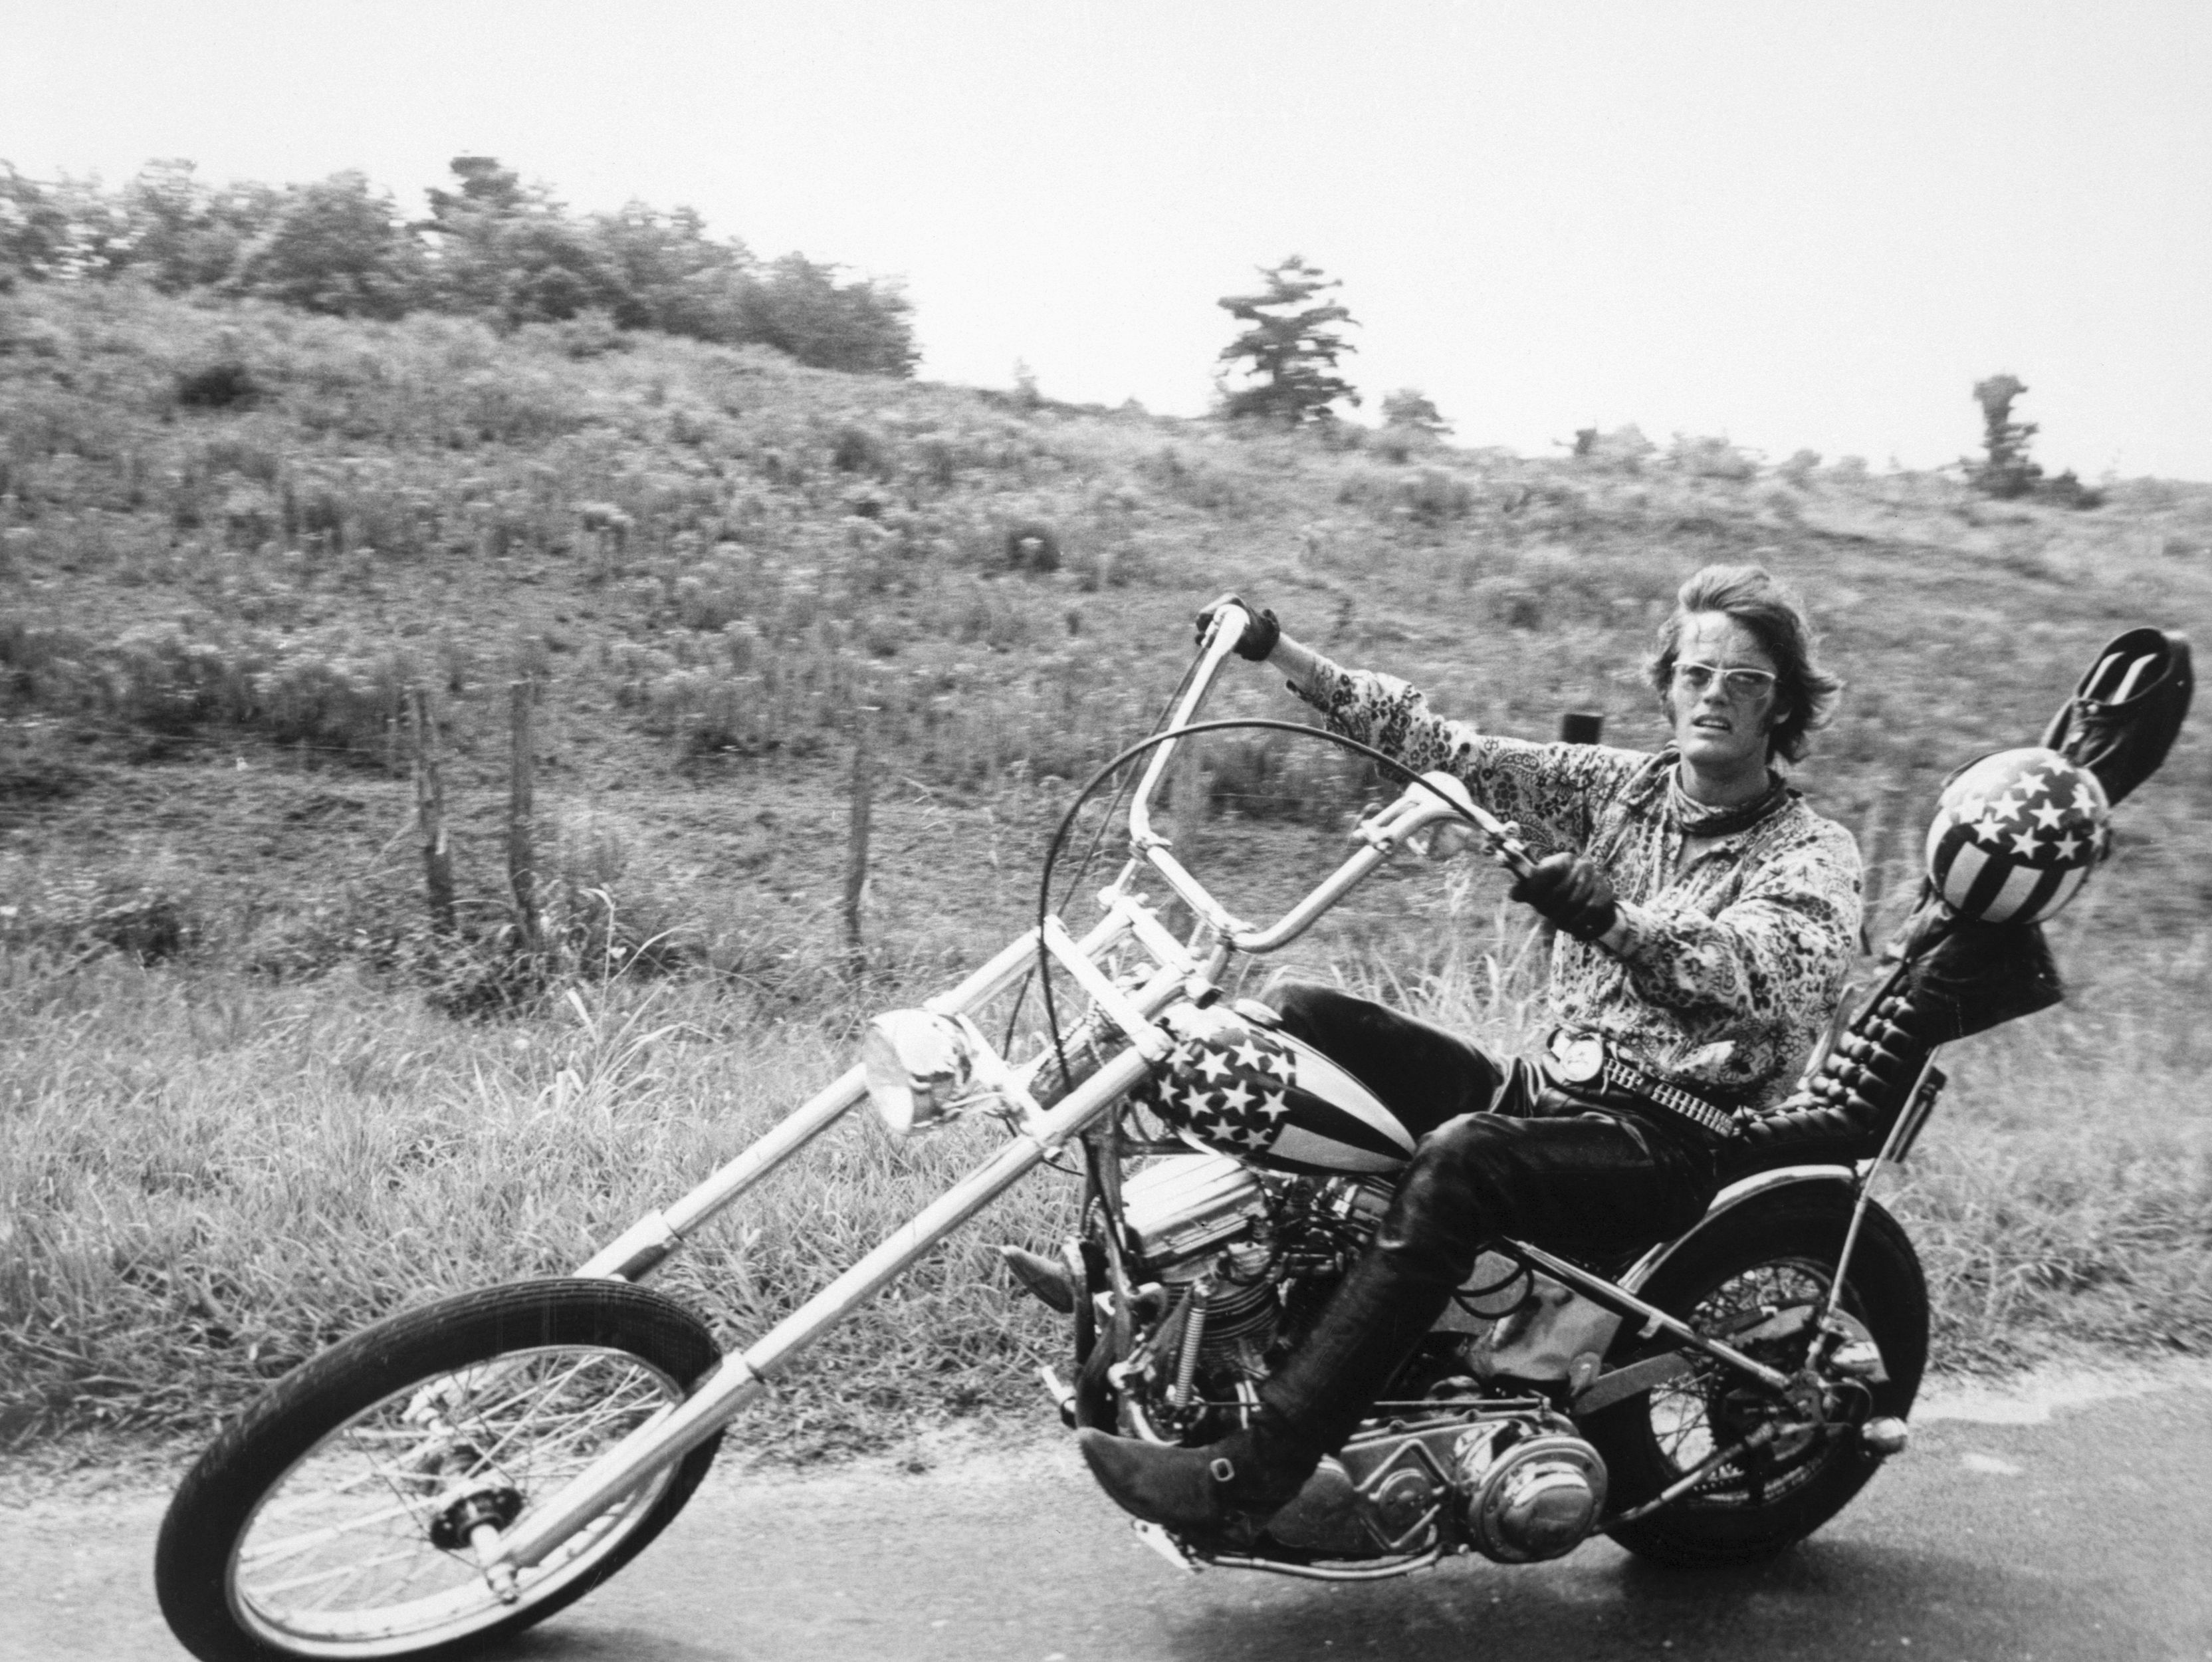 Remembering The Life Of Peter Fonda In Pictures